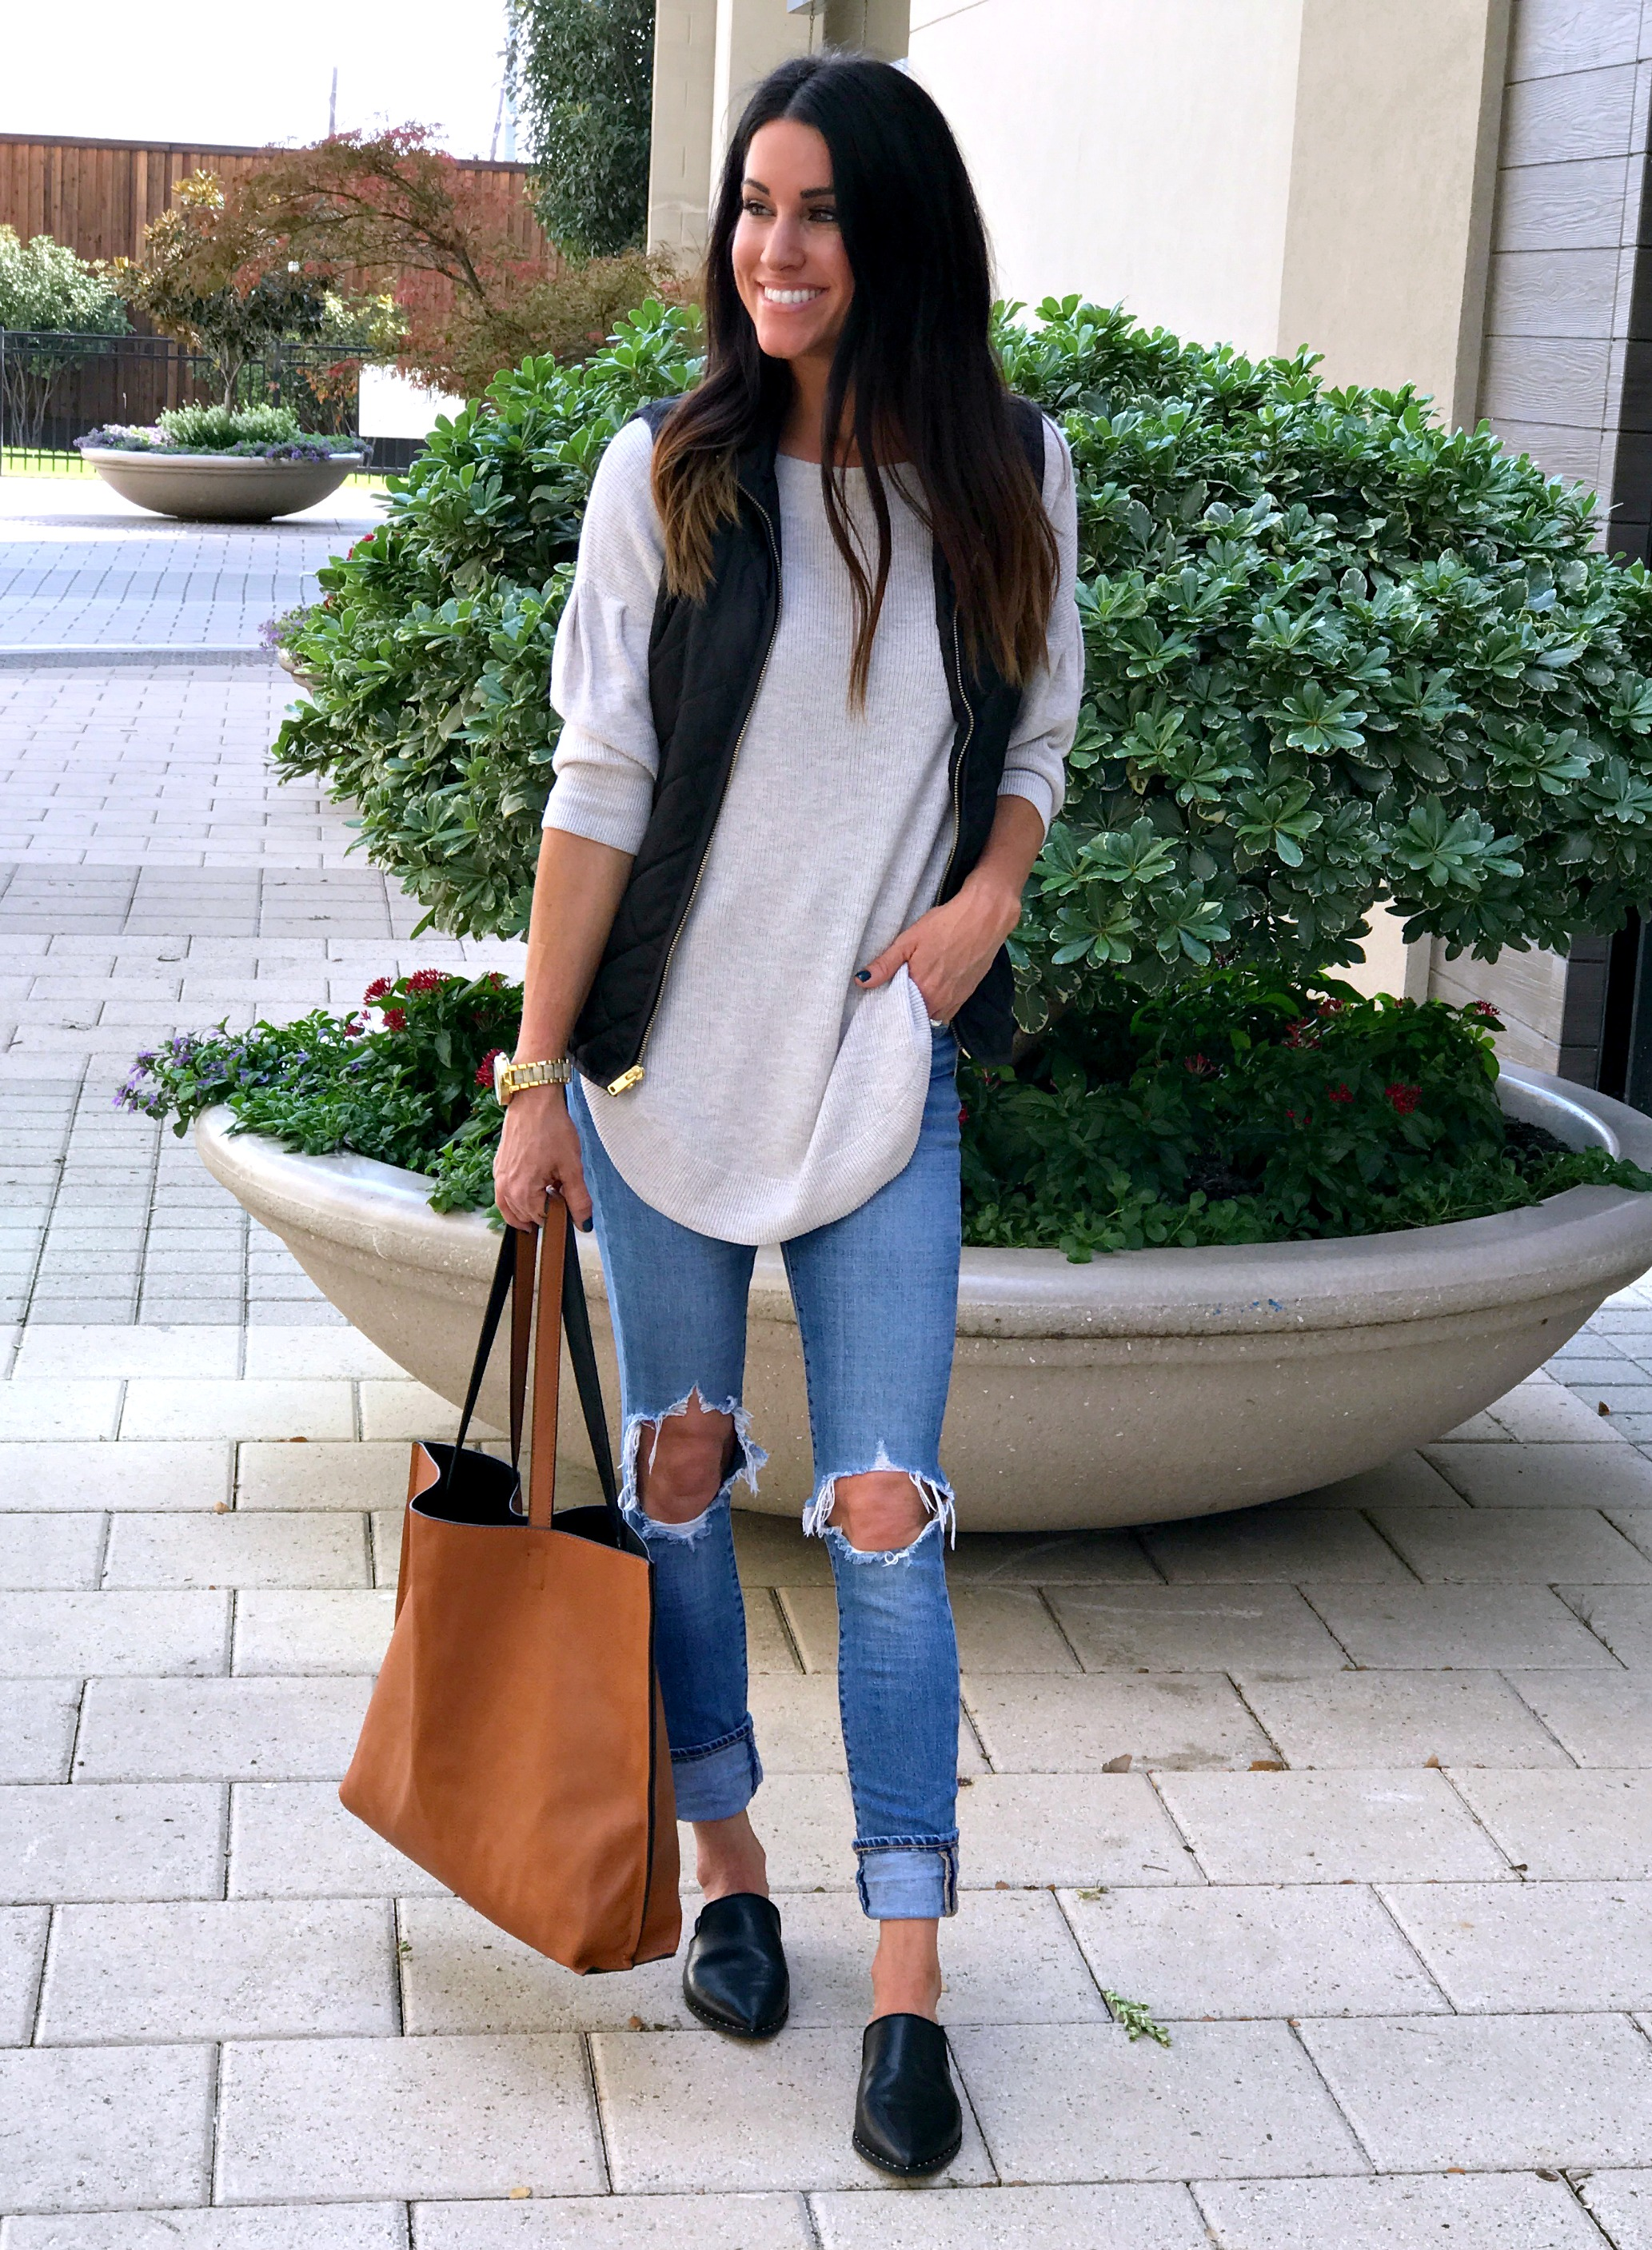 Casual basics that I'm loving